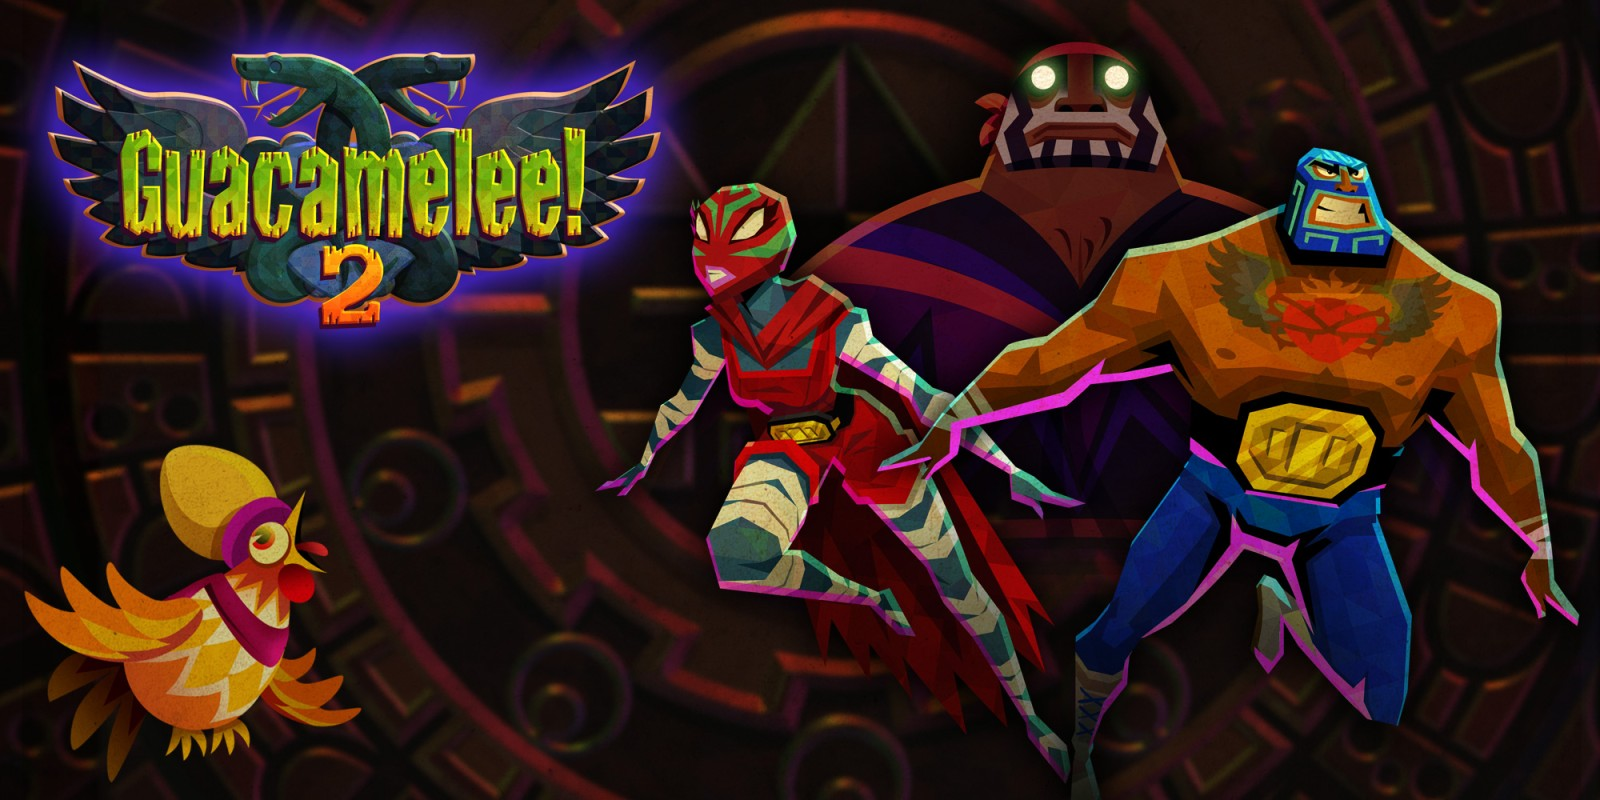 H2x1_NSwitchDS_Guacamelee2_image1600w.jp